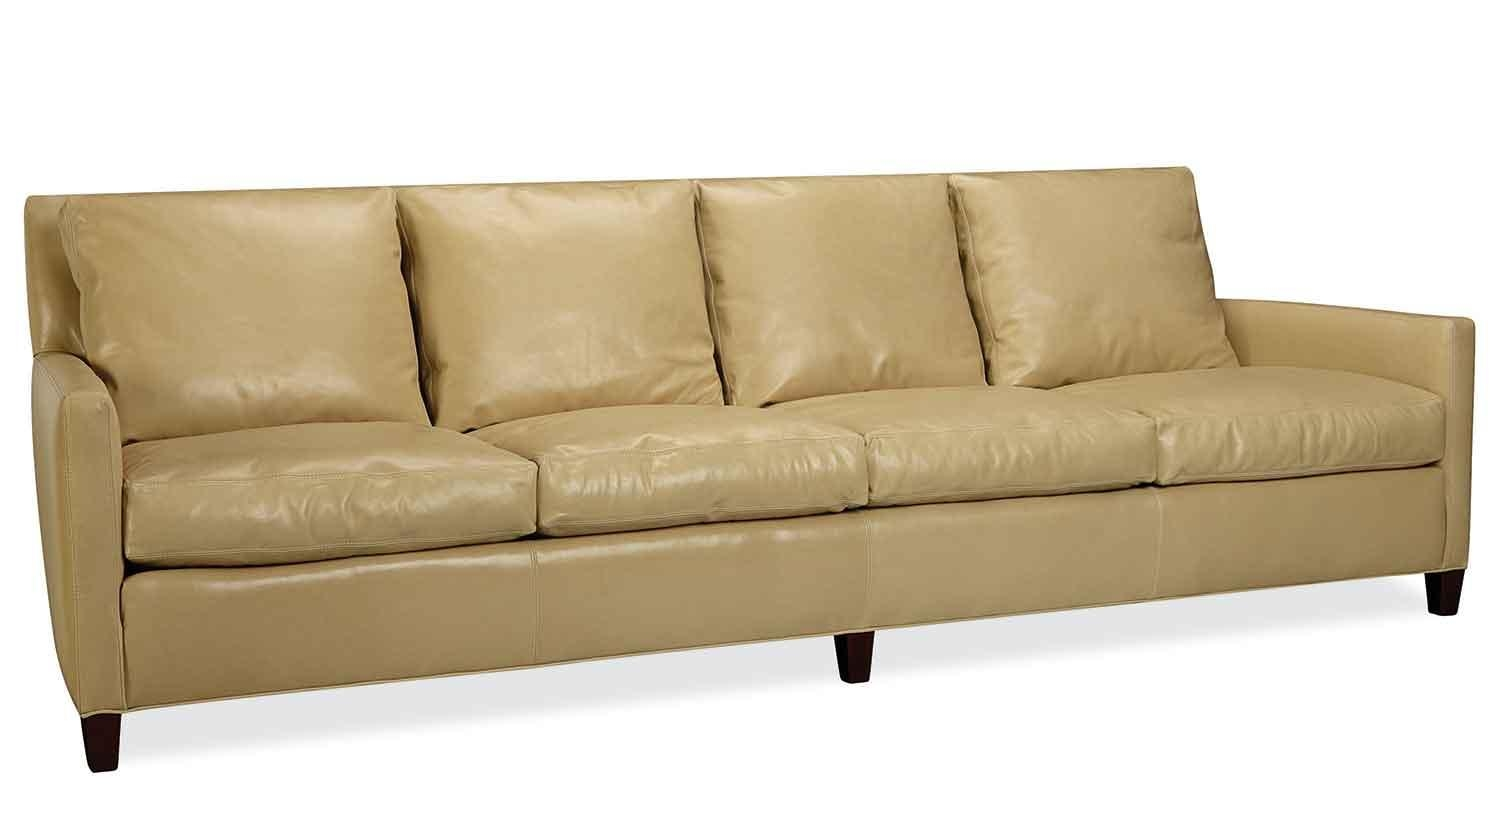 can you clean white leather sofas top of the line sofa brands 20 4 seat ideas